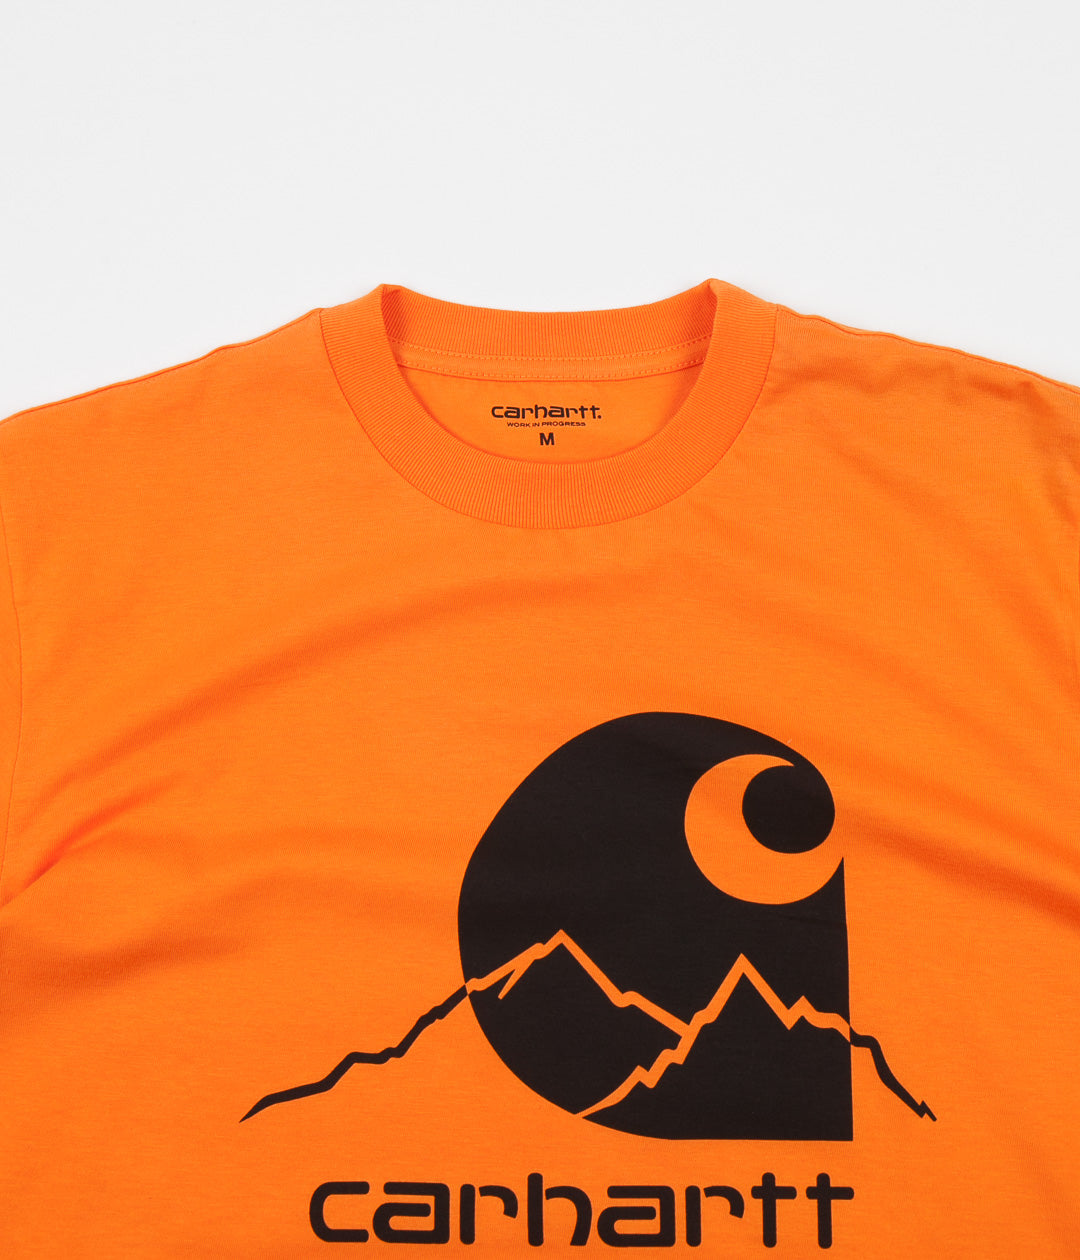 Carhartt Outdoor C T-Shirt - Clockwork / Black